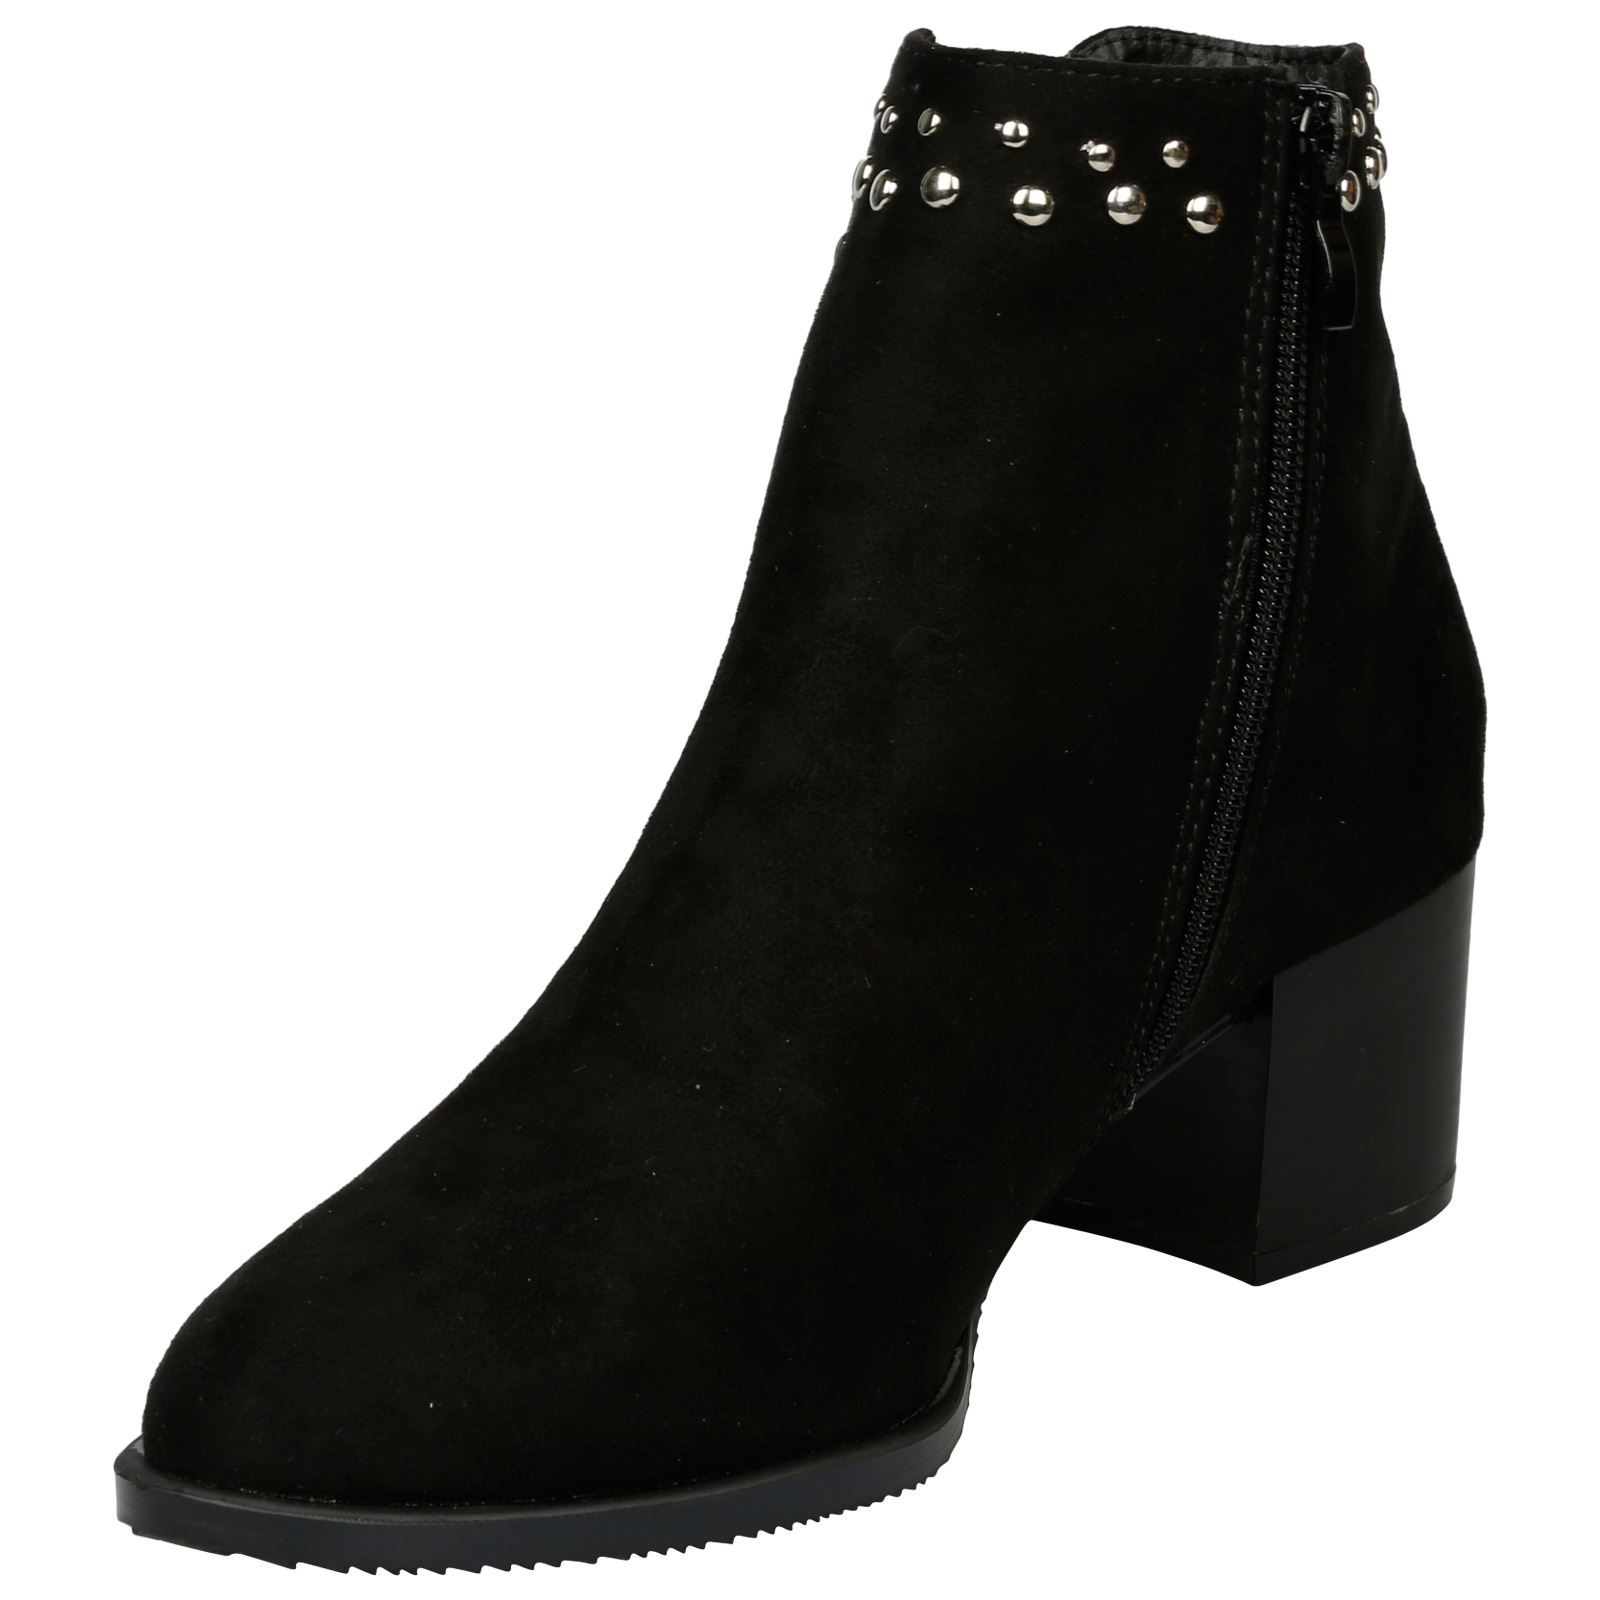 Luna-Womens-Low-Mid-Block-Heel-Studded-Chelsea-Zip-Up-Ankle-Boots-Casual-Ladies thumbnail 4